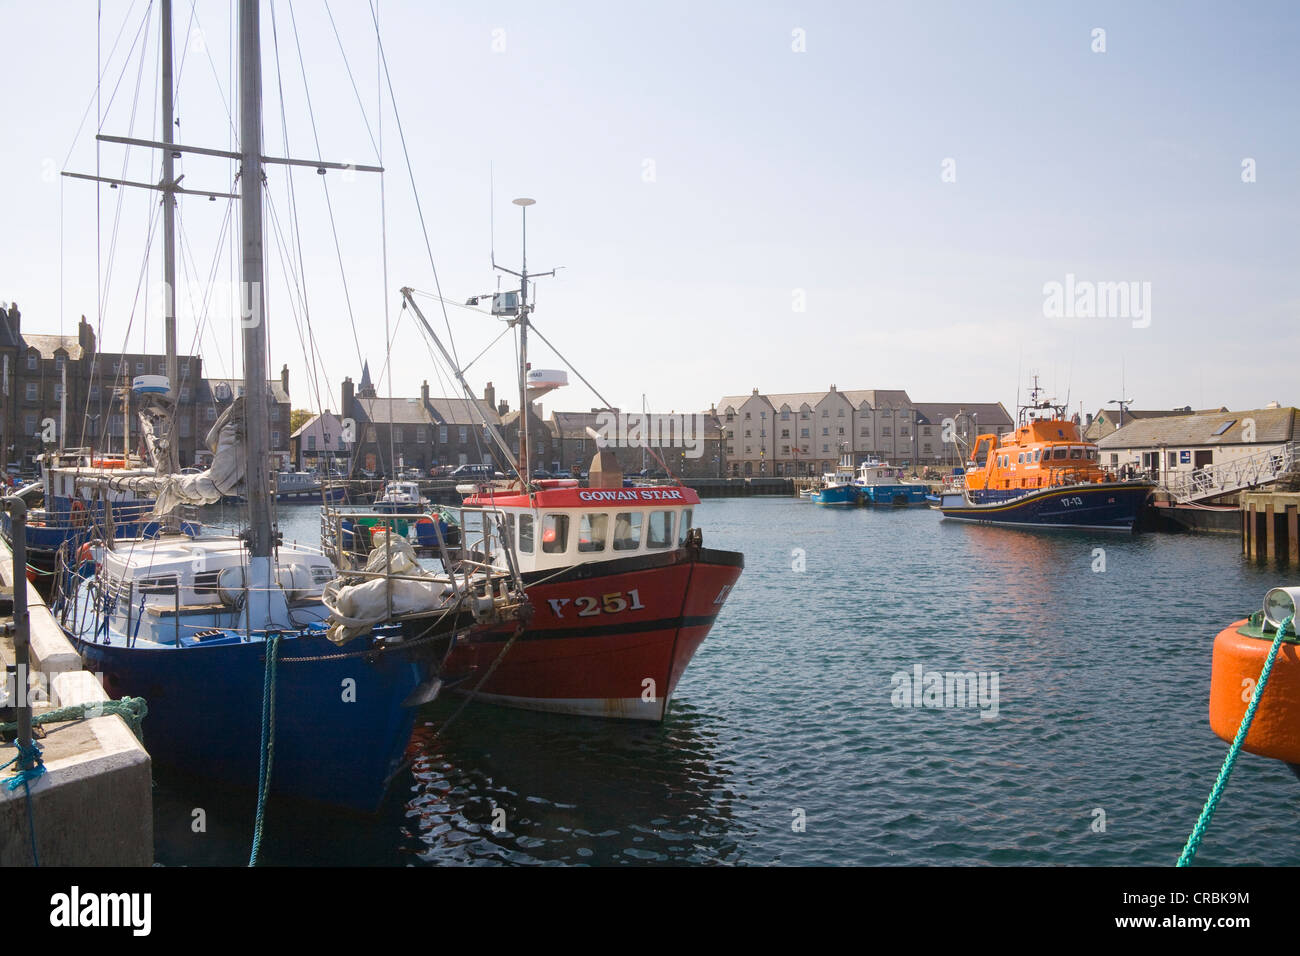 Kirkwall Orkney Mainland Scotland UK View across moored fishing boats and lifeboat to harbour side properties in - Stock Image